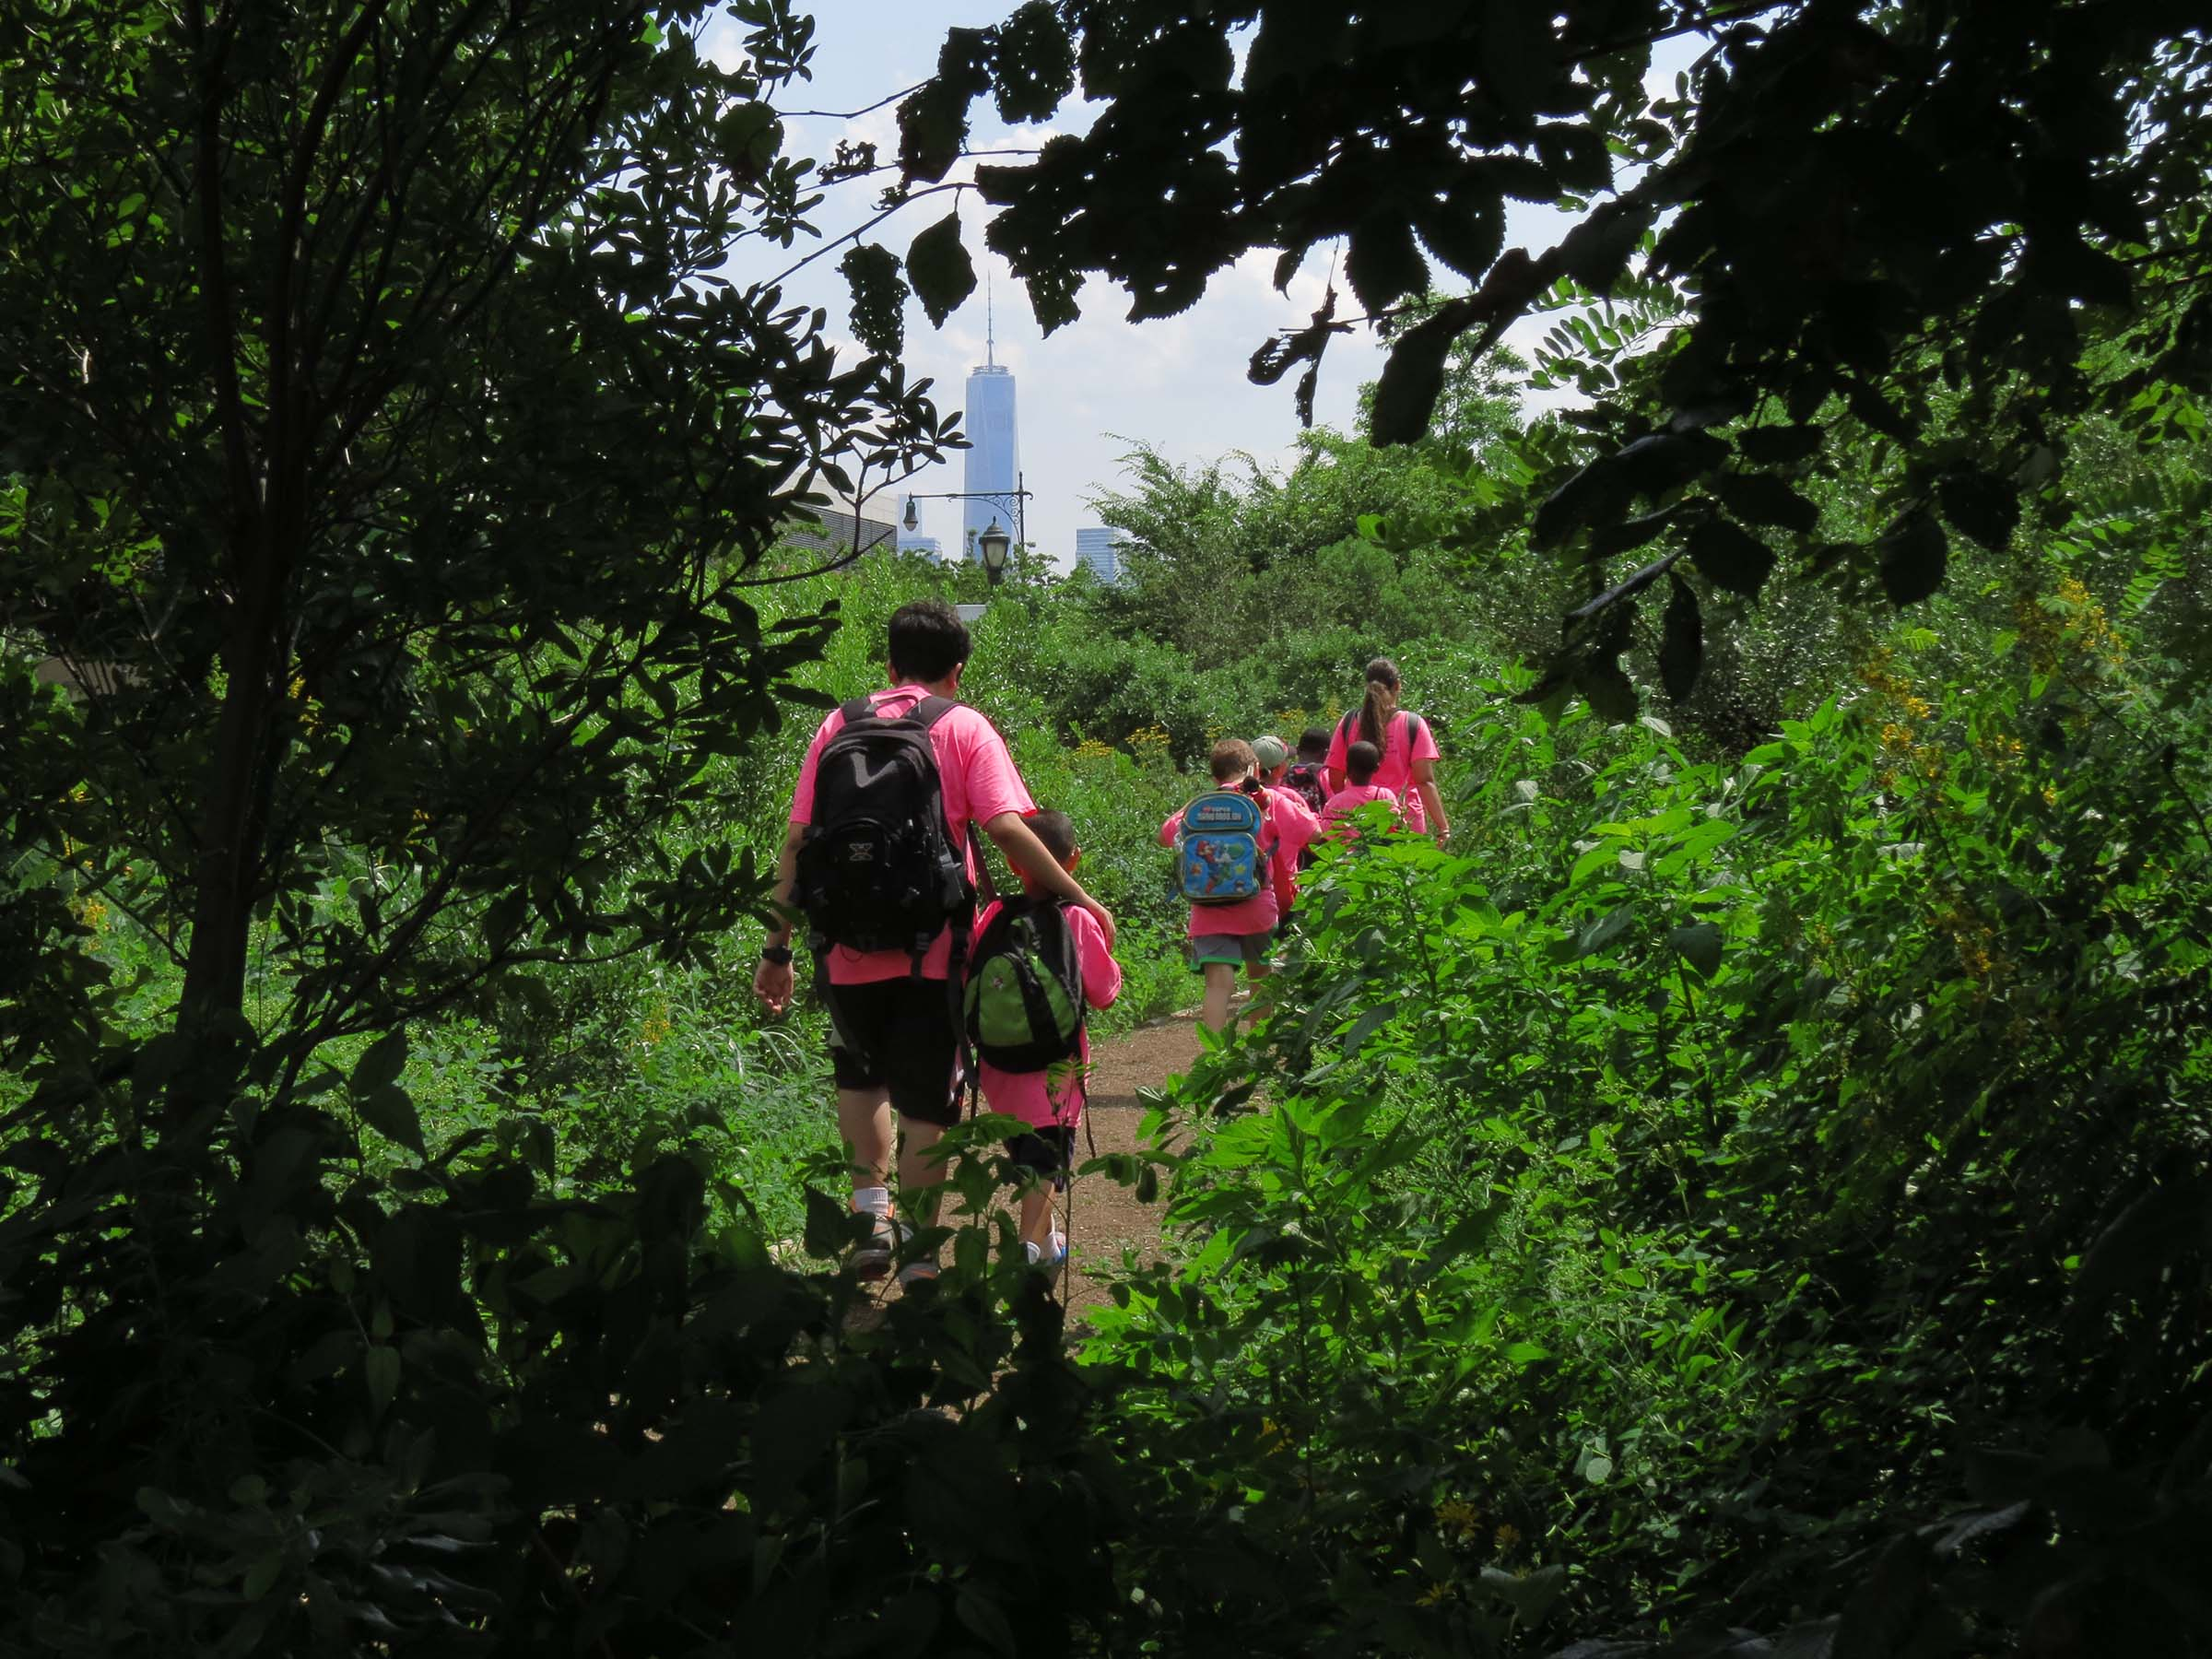 A group of students explore the green paths in the habitat garden